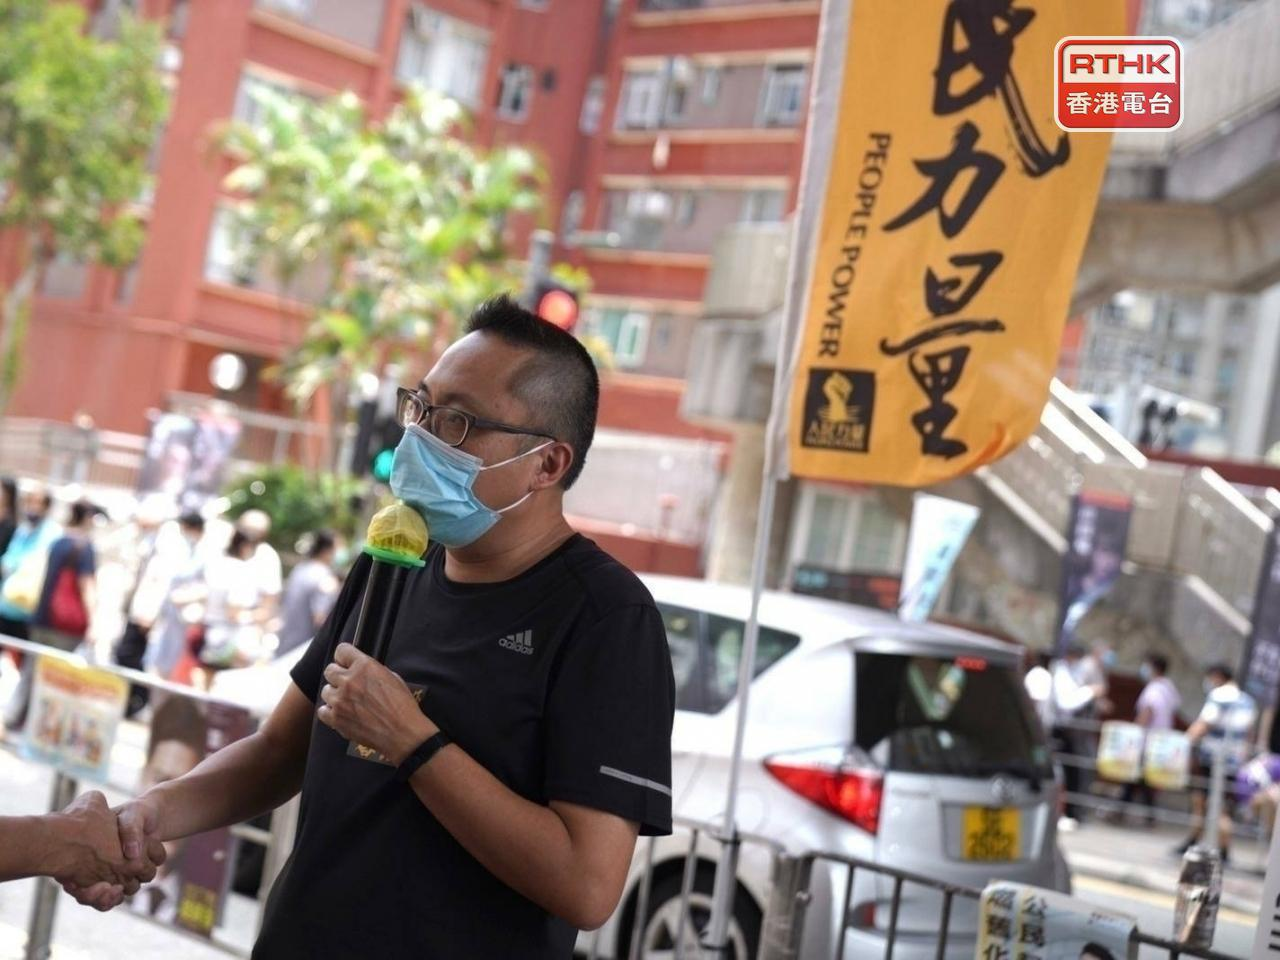 The activist, known as 'Fast Beat', is accused of uttering seditious words and six other protest-related charges. File photo: RTHK